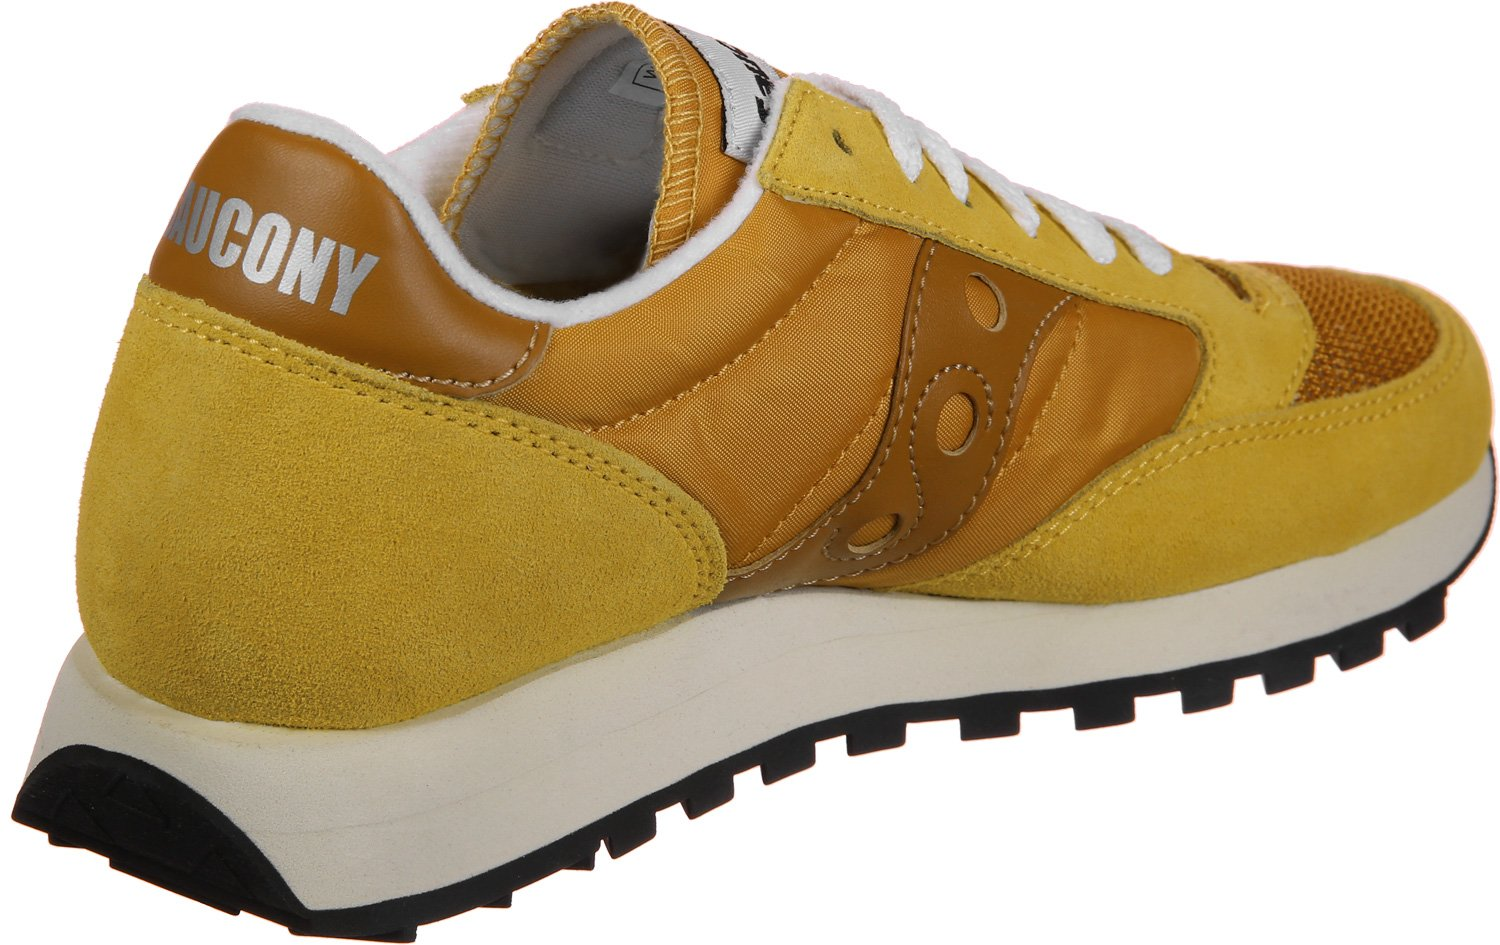 Saucony Jazz Original Vintage Womens Trainers Gold - 7.5 UK by Saucony (Image #1)